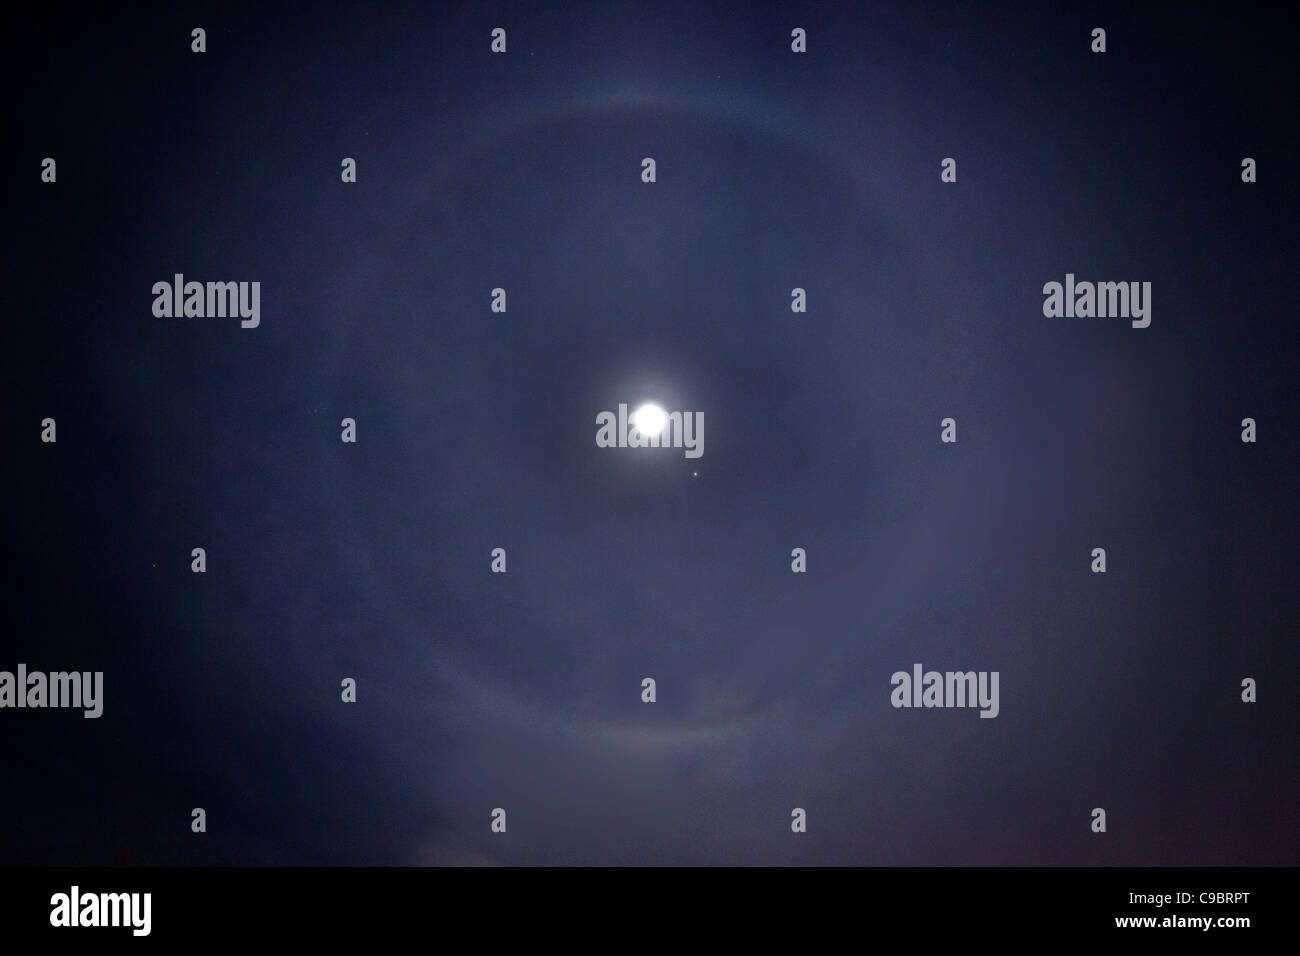 Moon ring phenomenon where a whitish halo surrounds the moon in winter. - Stock Image